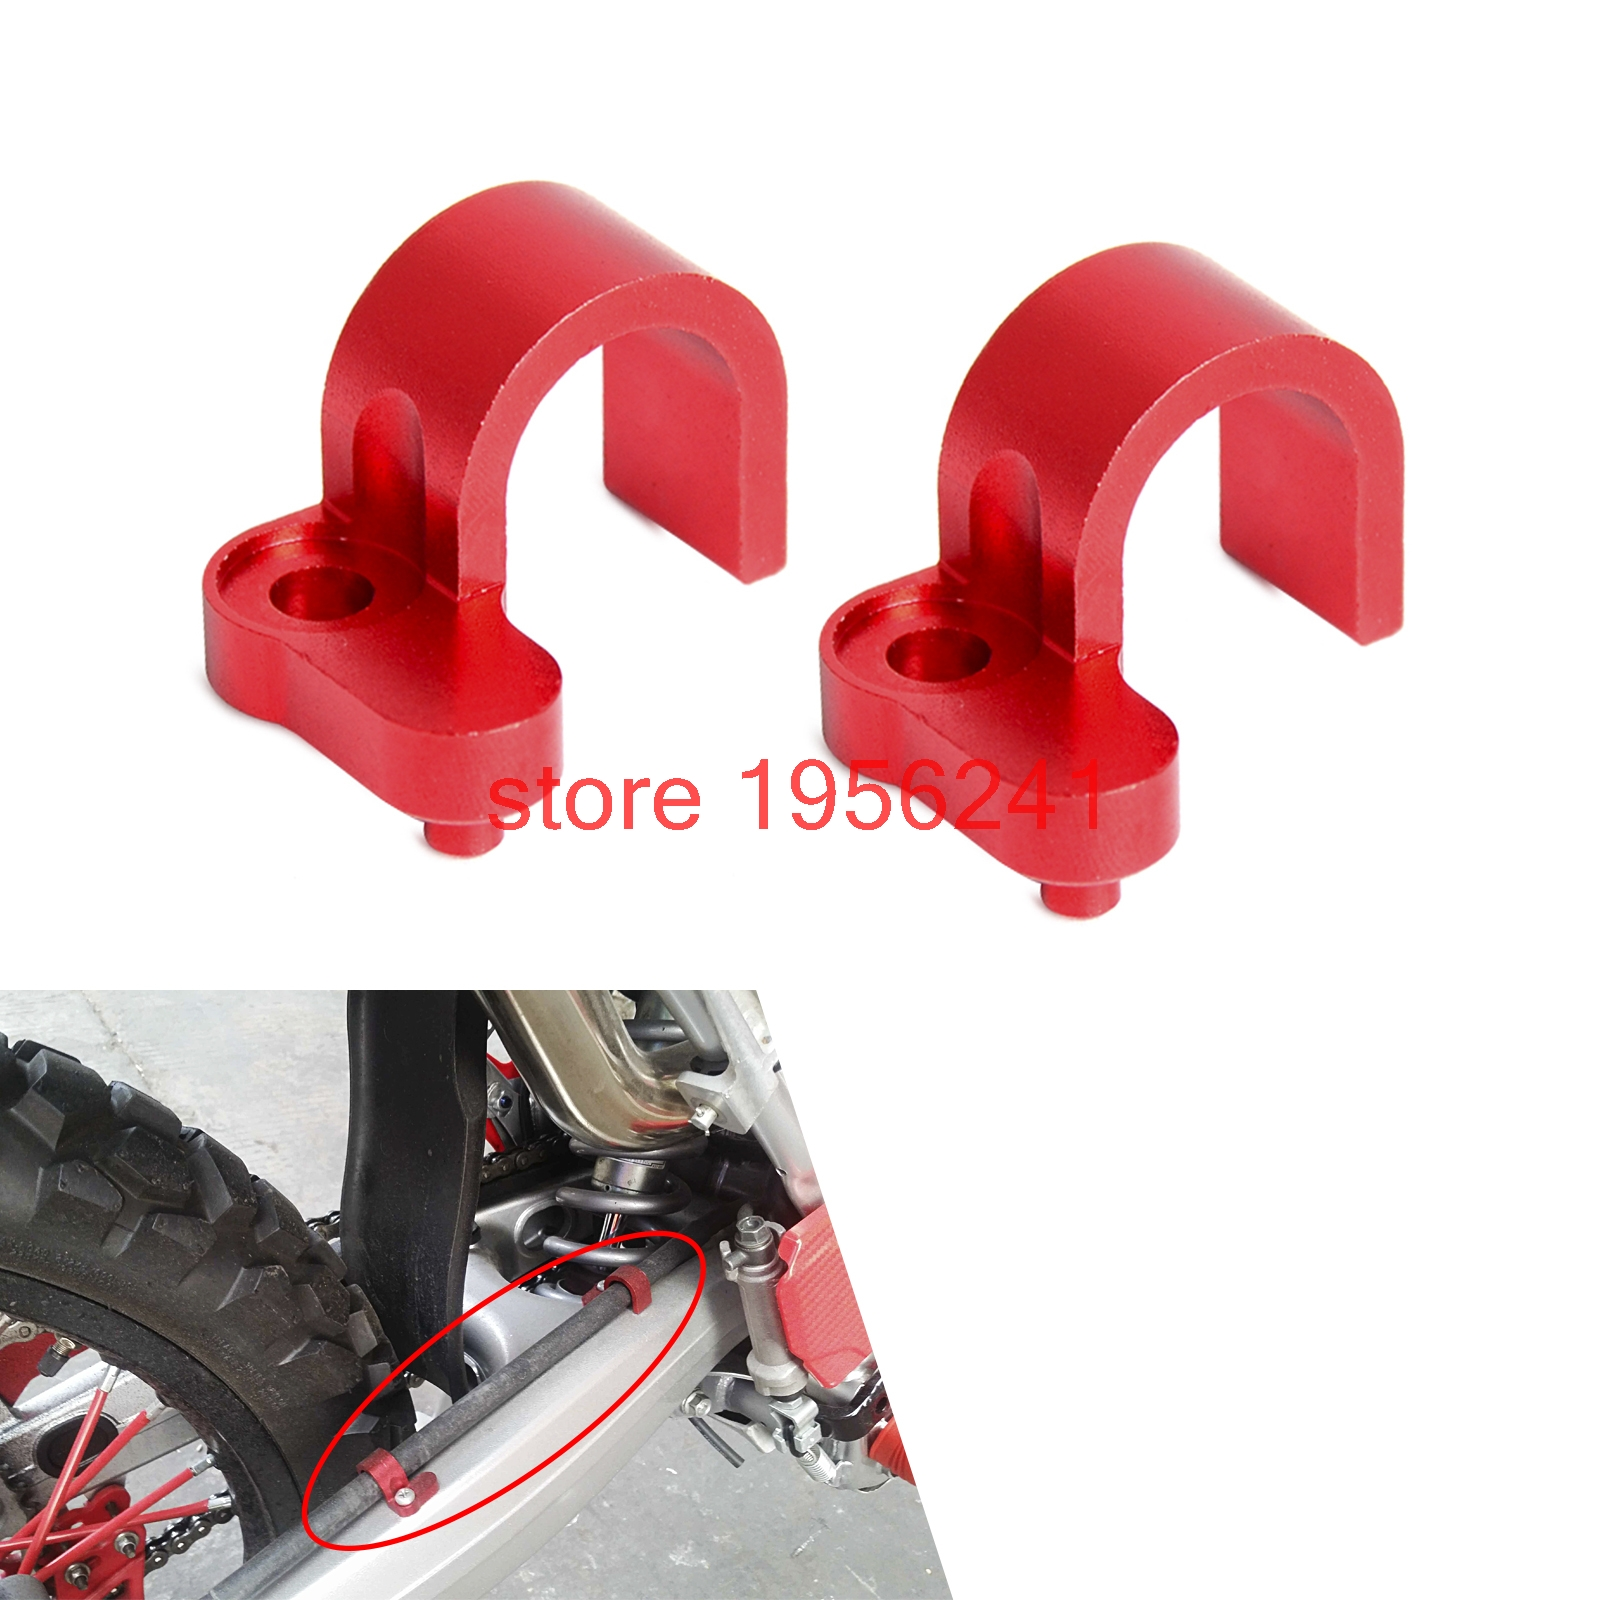 CNC Rear Brake Line Hose Clamp Holder For Honda CRF250L CRF250M 2012 - 2015 2013 2014 CRF250 L/M soft line linley m l